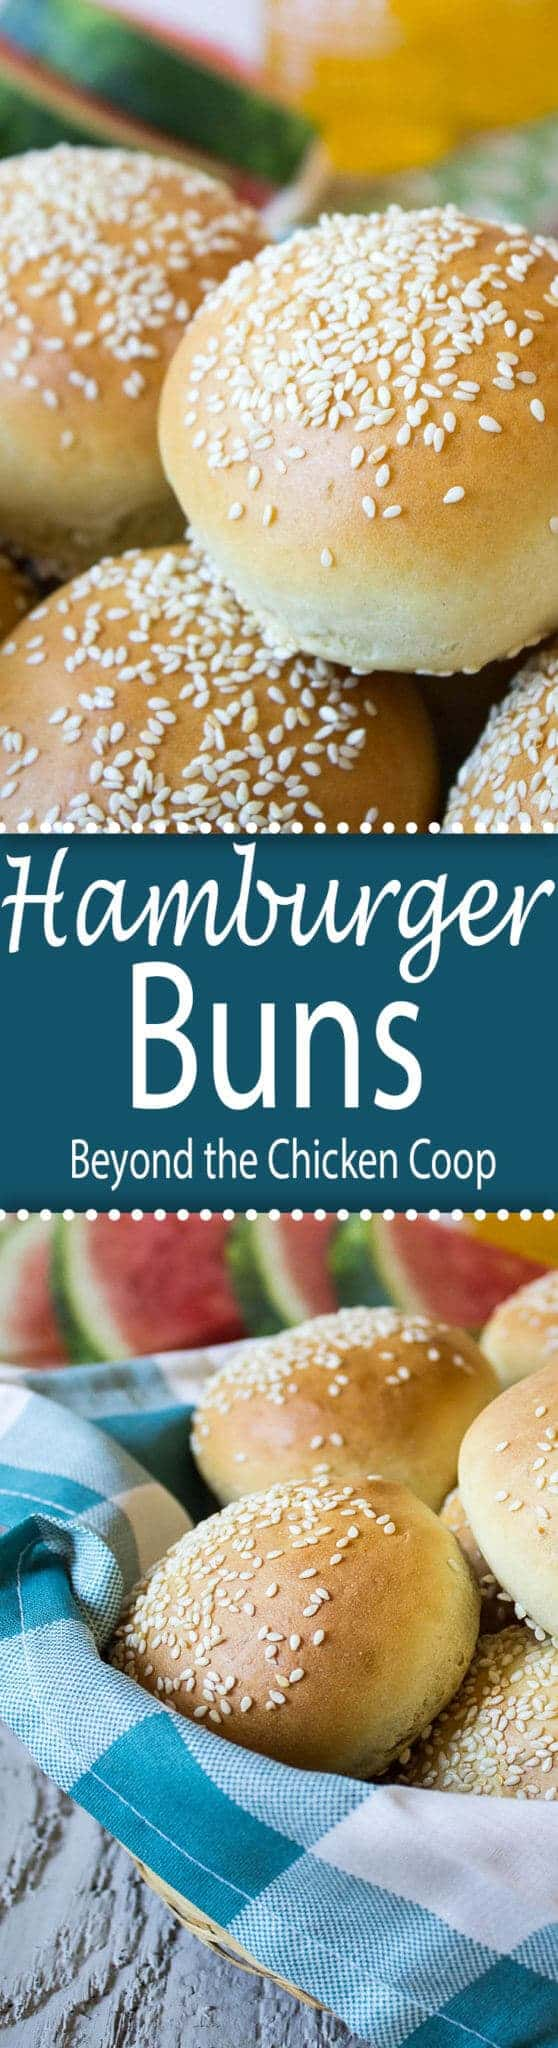 Take your burger to a whole new level with homemade hamburger buns. #hamburgerbuns #homemadebread #baking